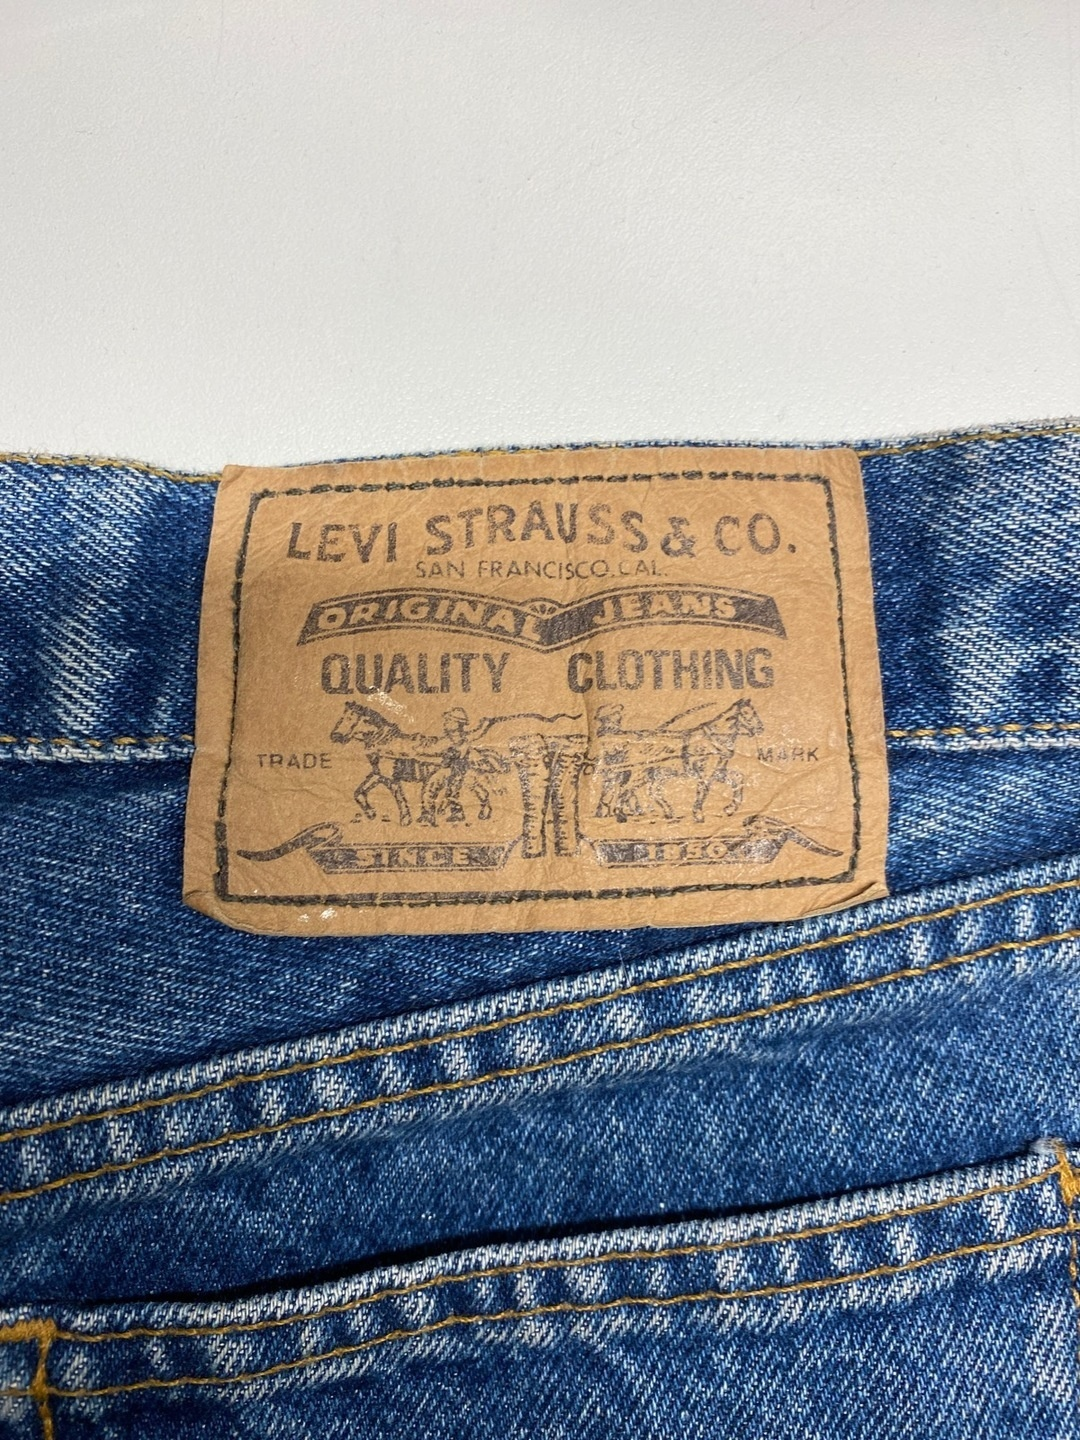 Women's shorts - LEVI'S photo 3